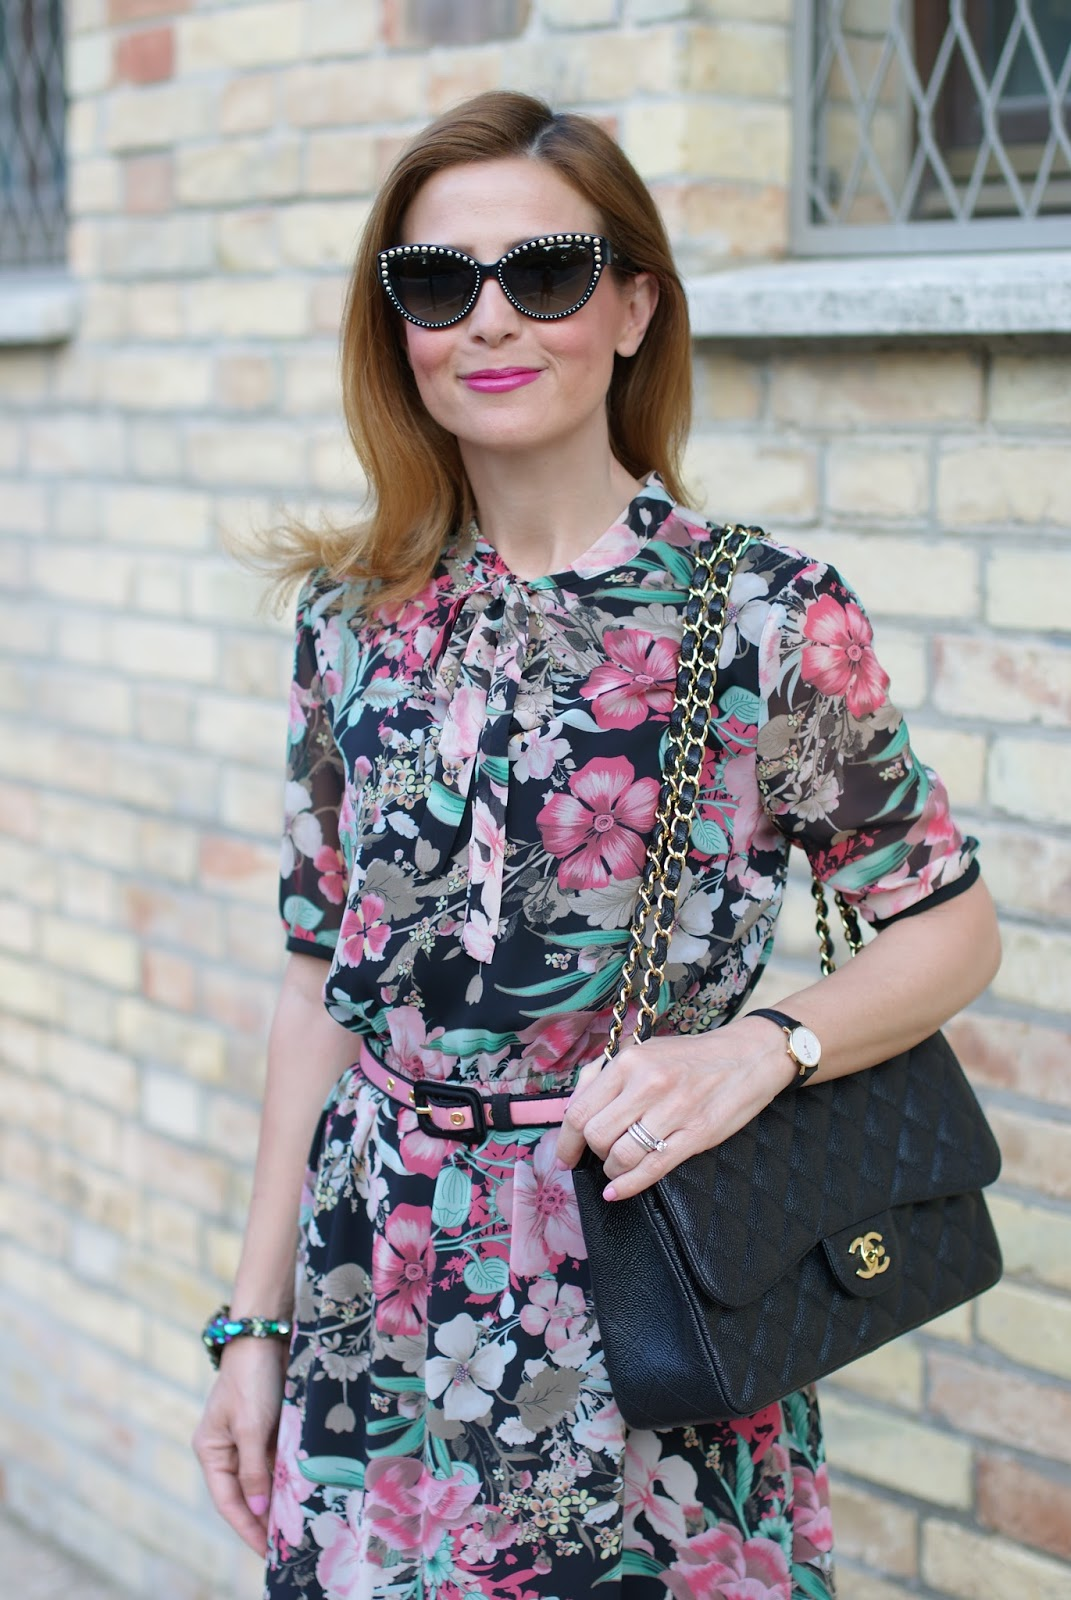 Floral chiffon dress with Valentino Rockstud heels and Chanel bag on Fashion and Cookies fashion blog, fashion blogger style